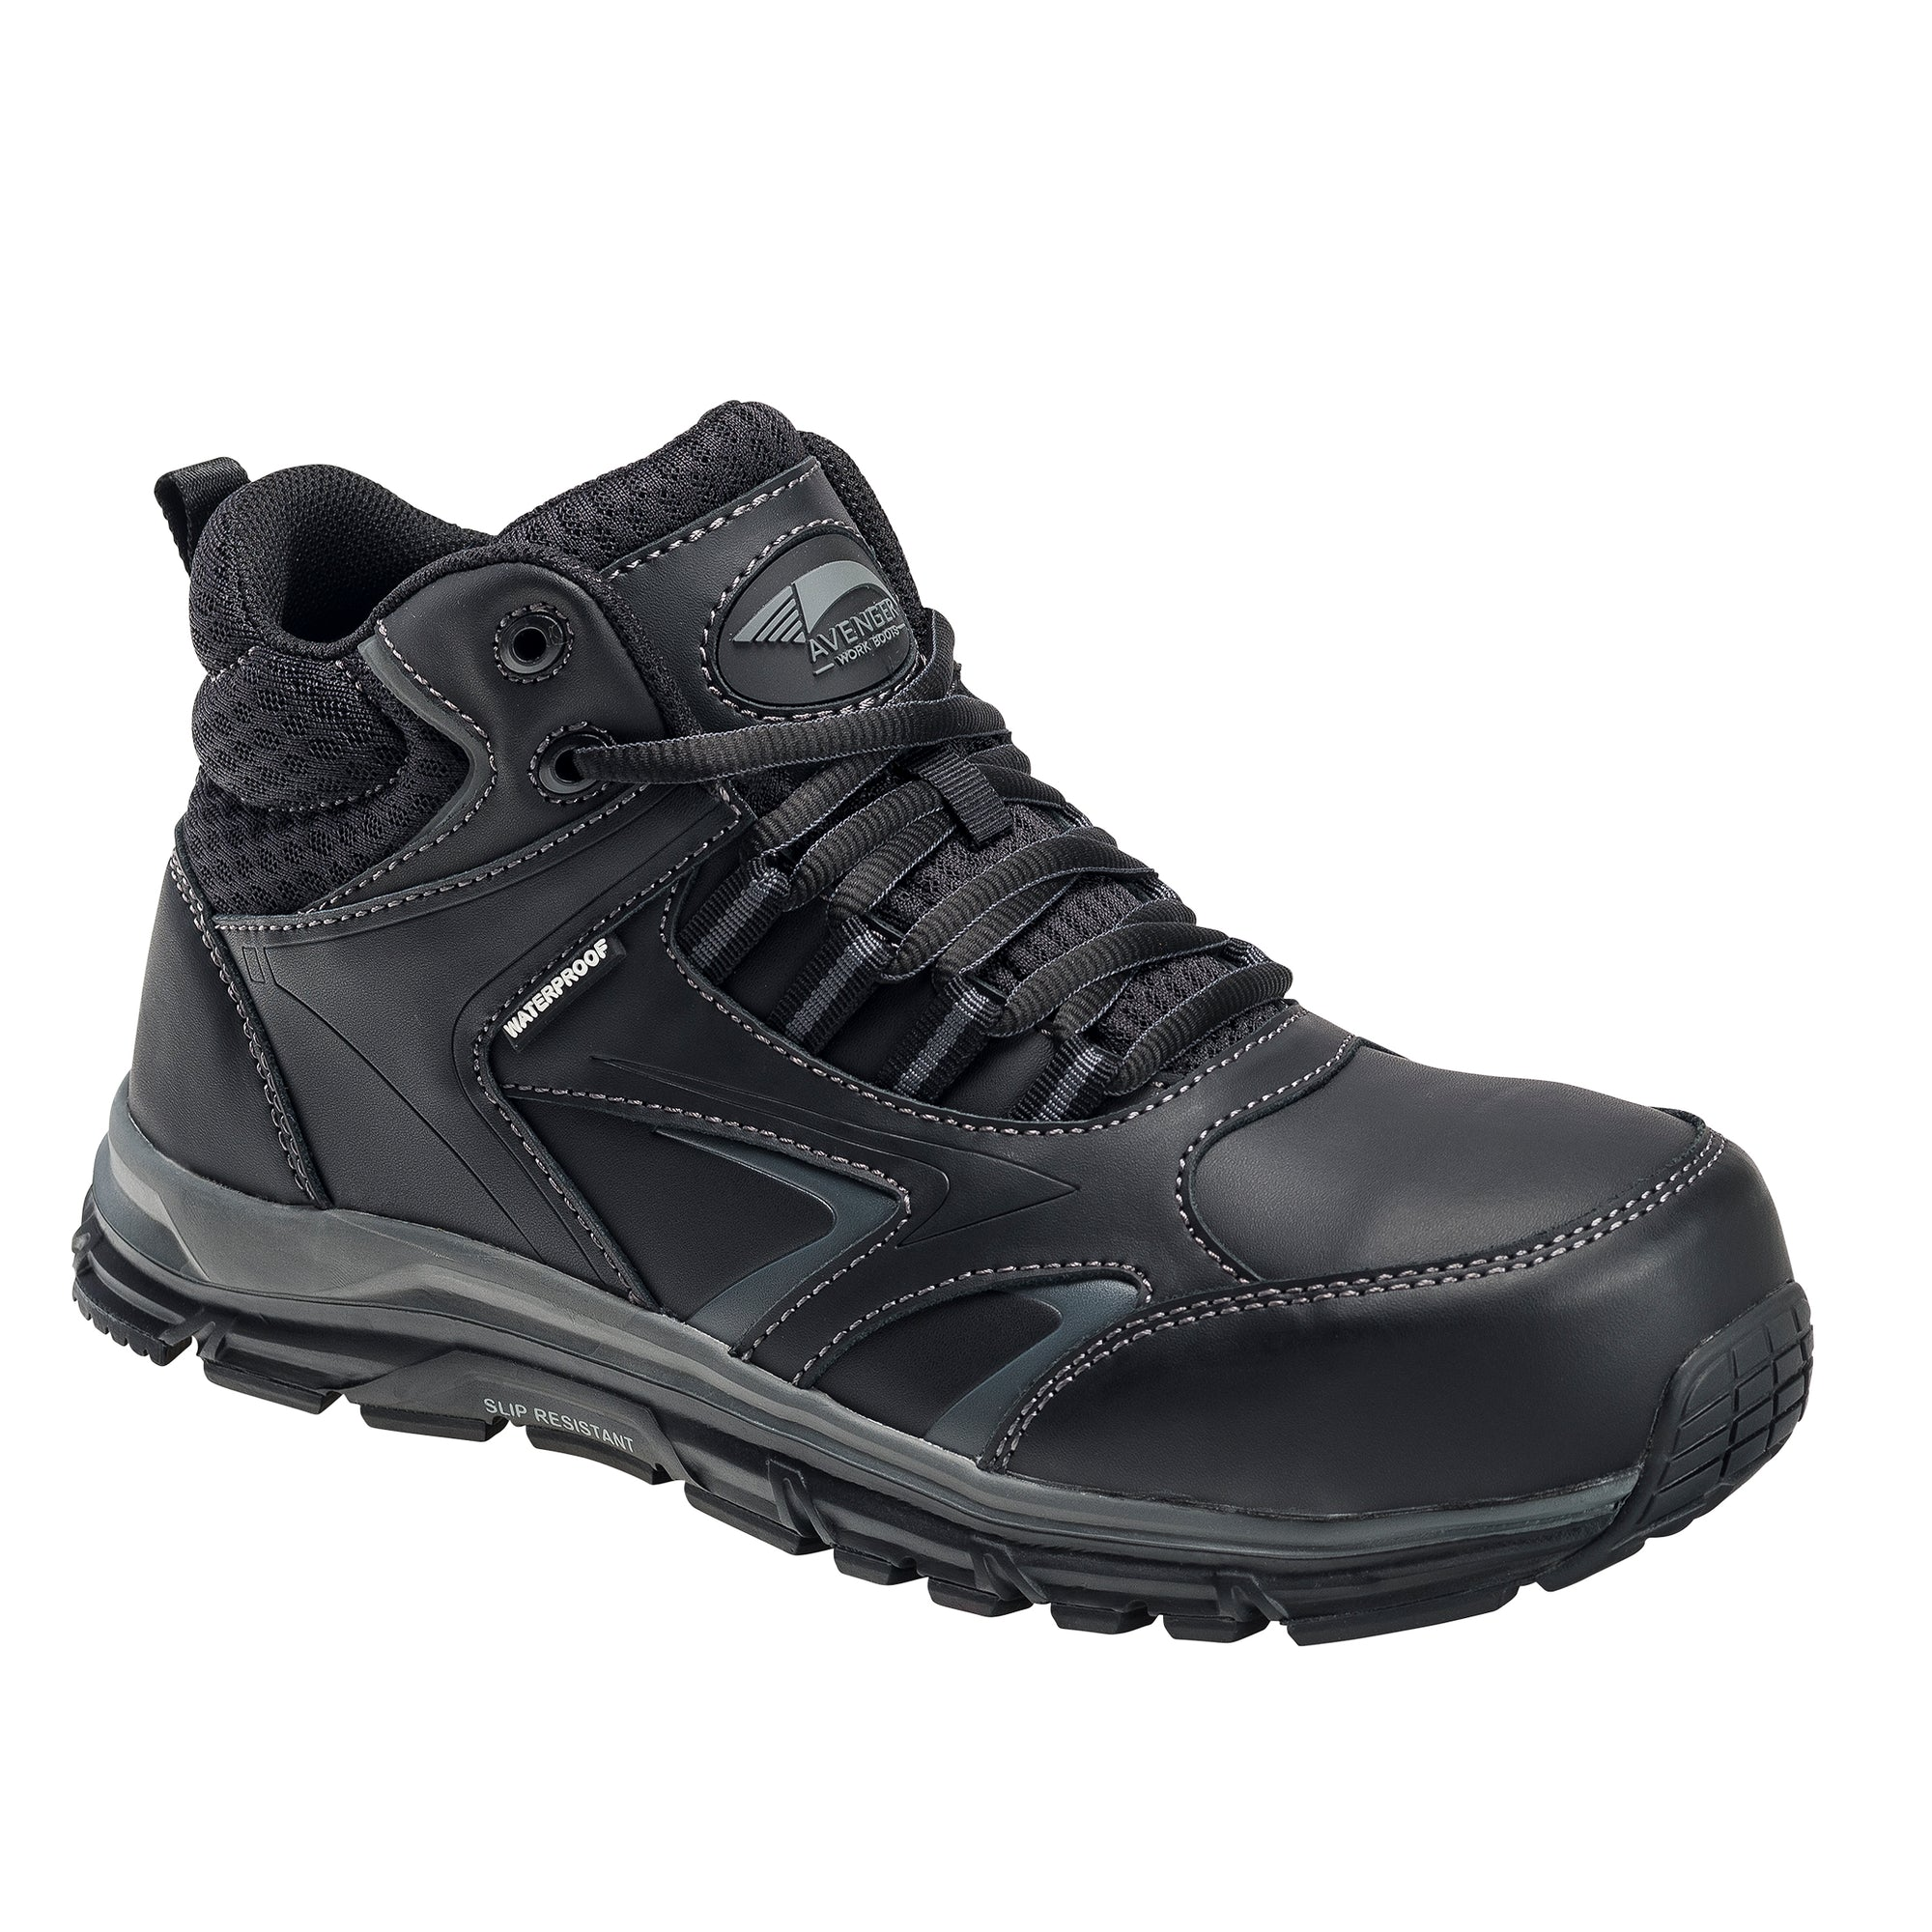 Thresher Black Alloy Toe EH WP Work Shoe